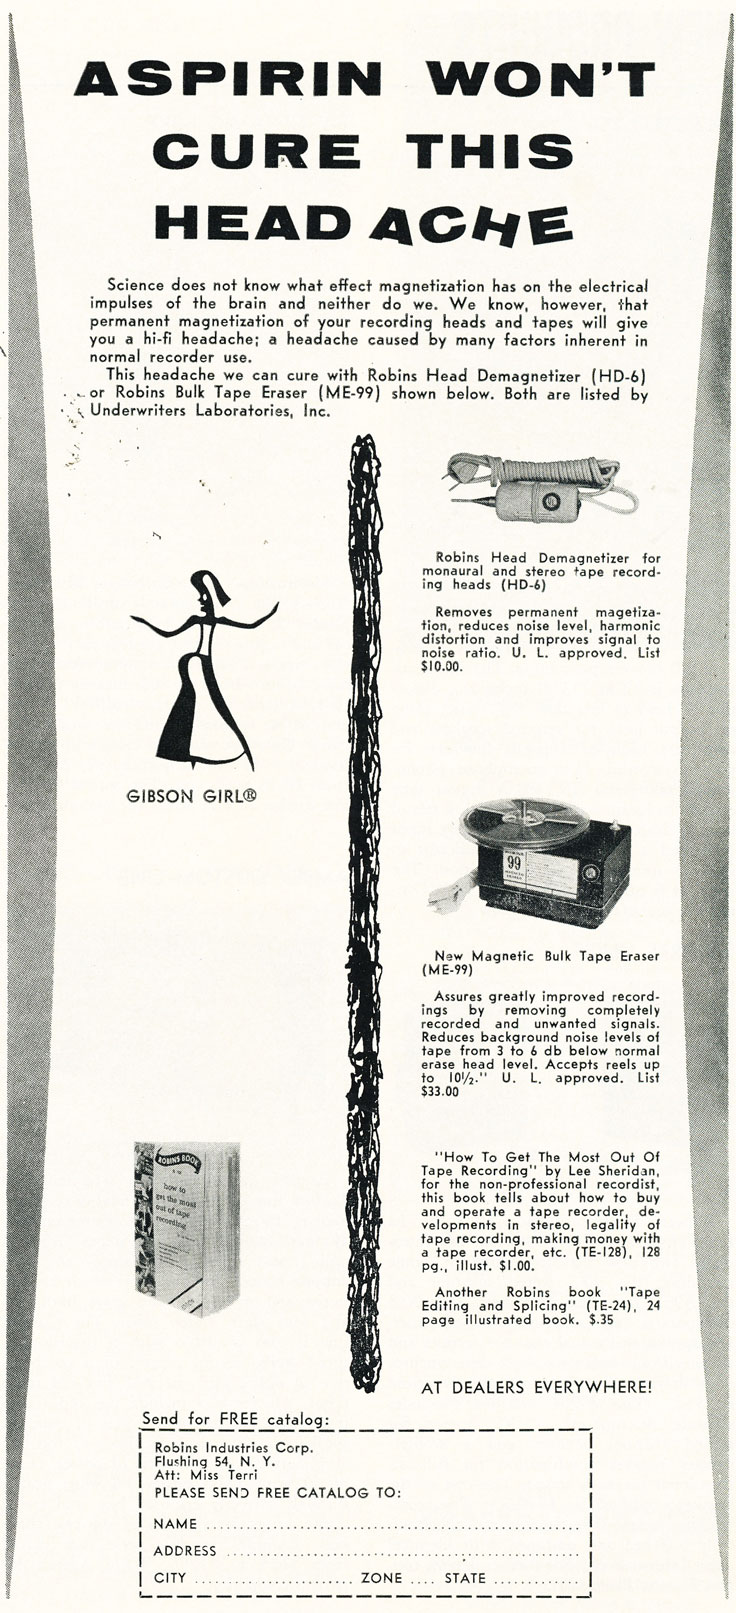 1960 ad for Robins reel to reel tape recorder accessories in Reel2ReelTexas.com's vintage recording collection